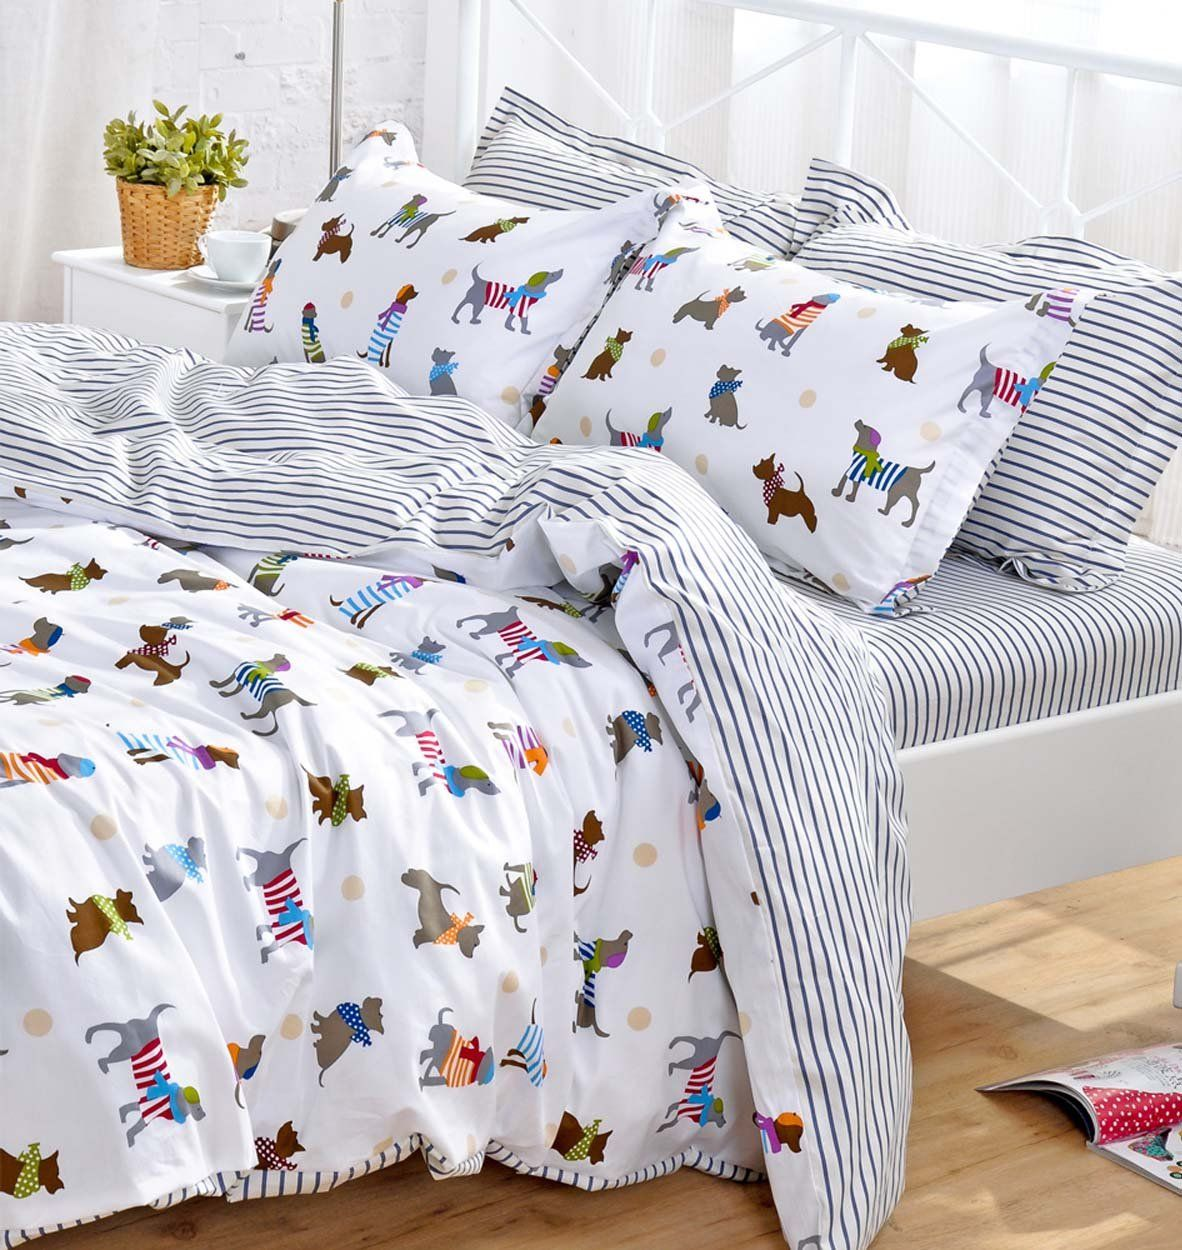 YOYOMALL Cotton Cartoon Dog Bedding Set,Cute Puppy Duvet Cover Set For Kids, Children